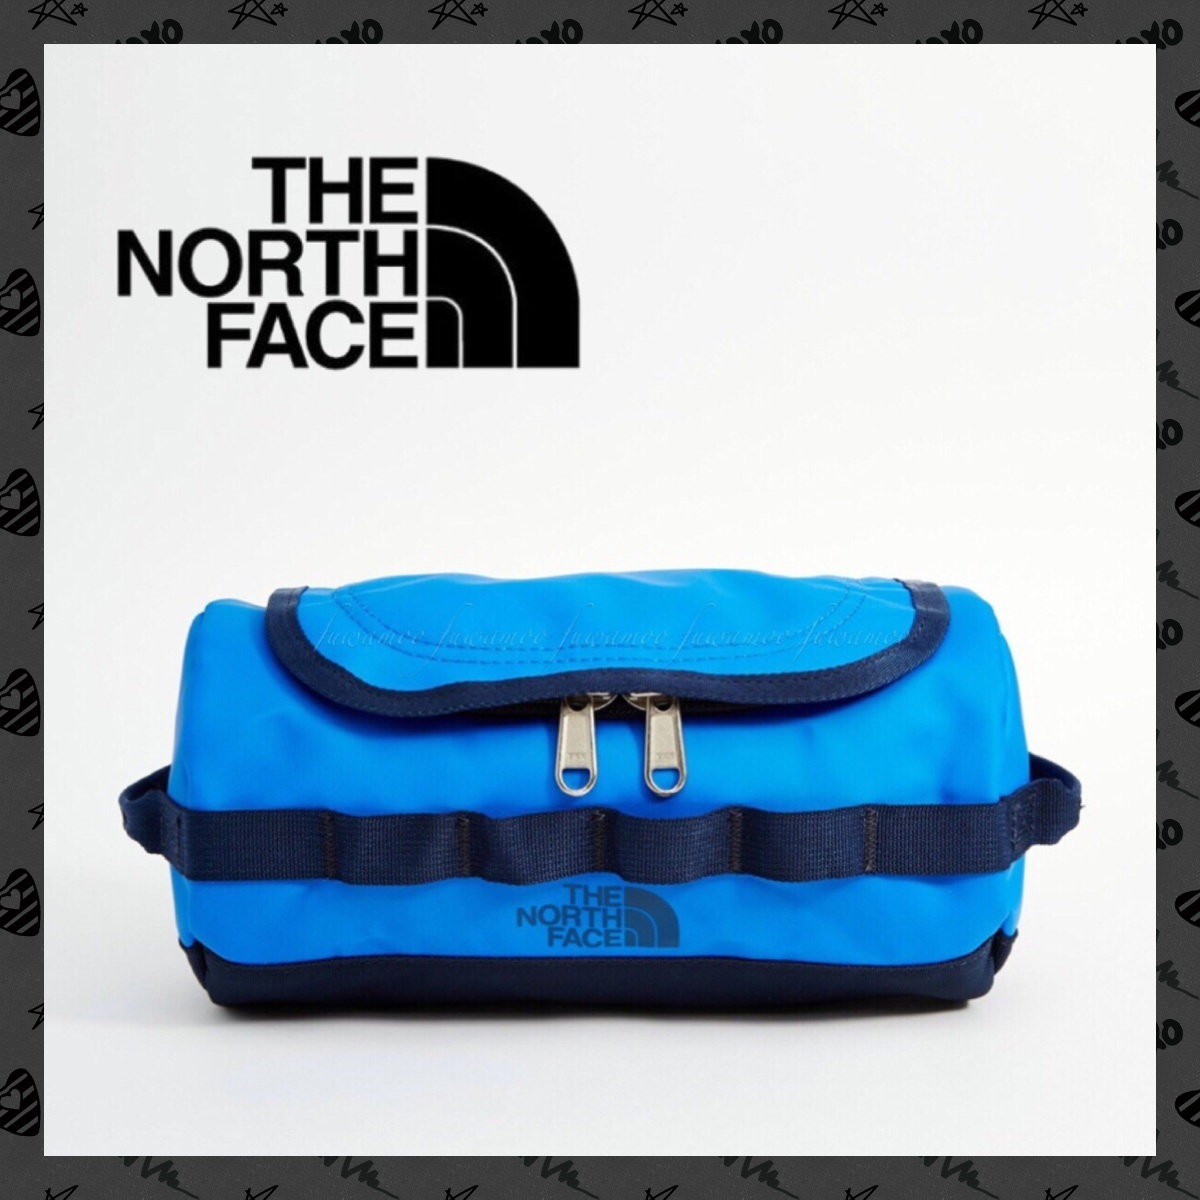 【関税&送料込】*THE NORTH FACE*新作* Wash Bag*Blue*